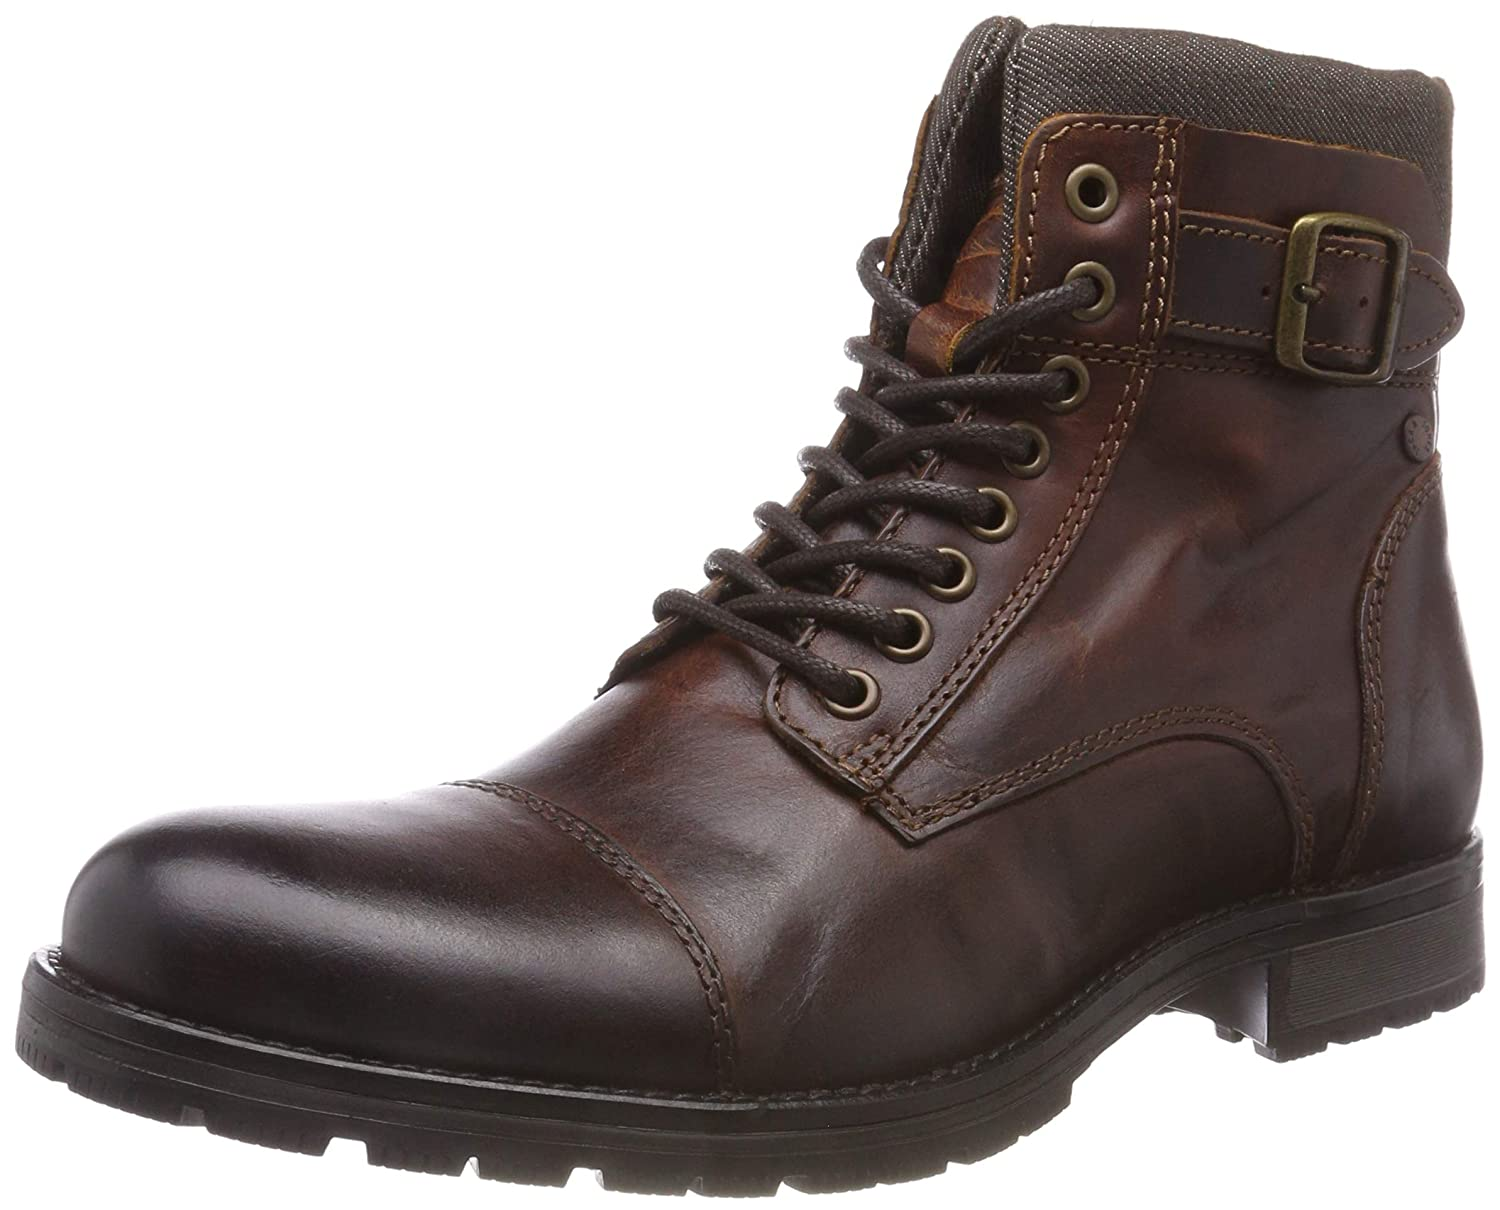 TALLA 43 EU. Jack & Jones Jfwalbany Leather Brown Stone STS, Botas Estilo Motero para Hombre